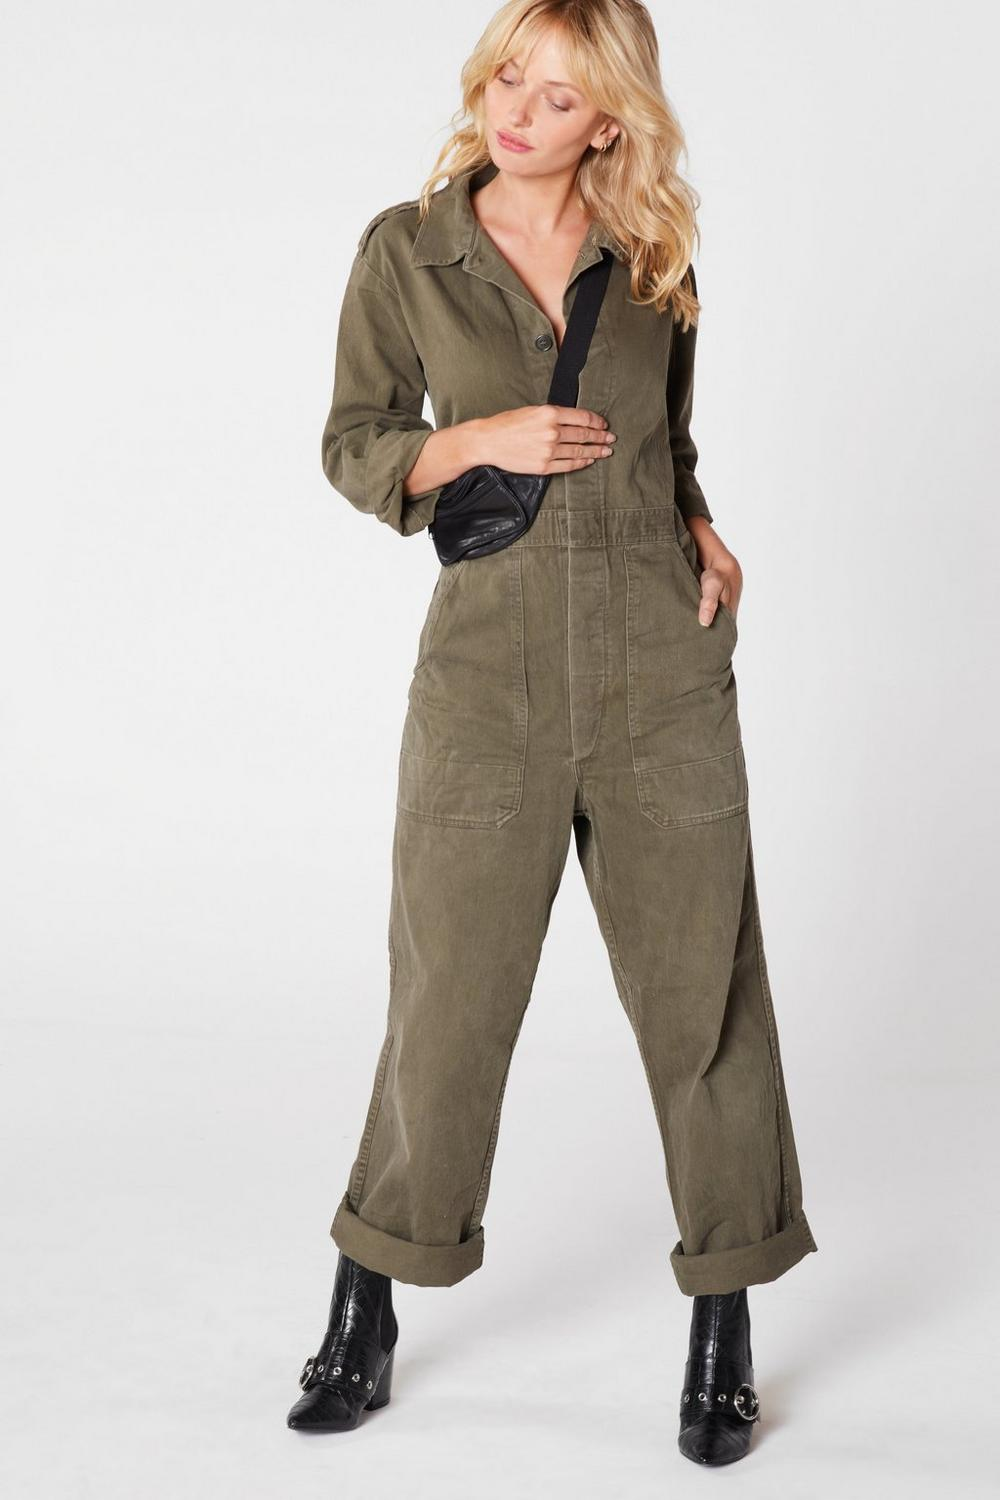 70a6372e3c2 After Party Vintage On the Job Utility Jumpsuit